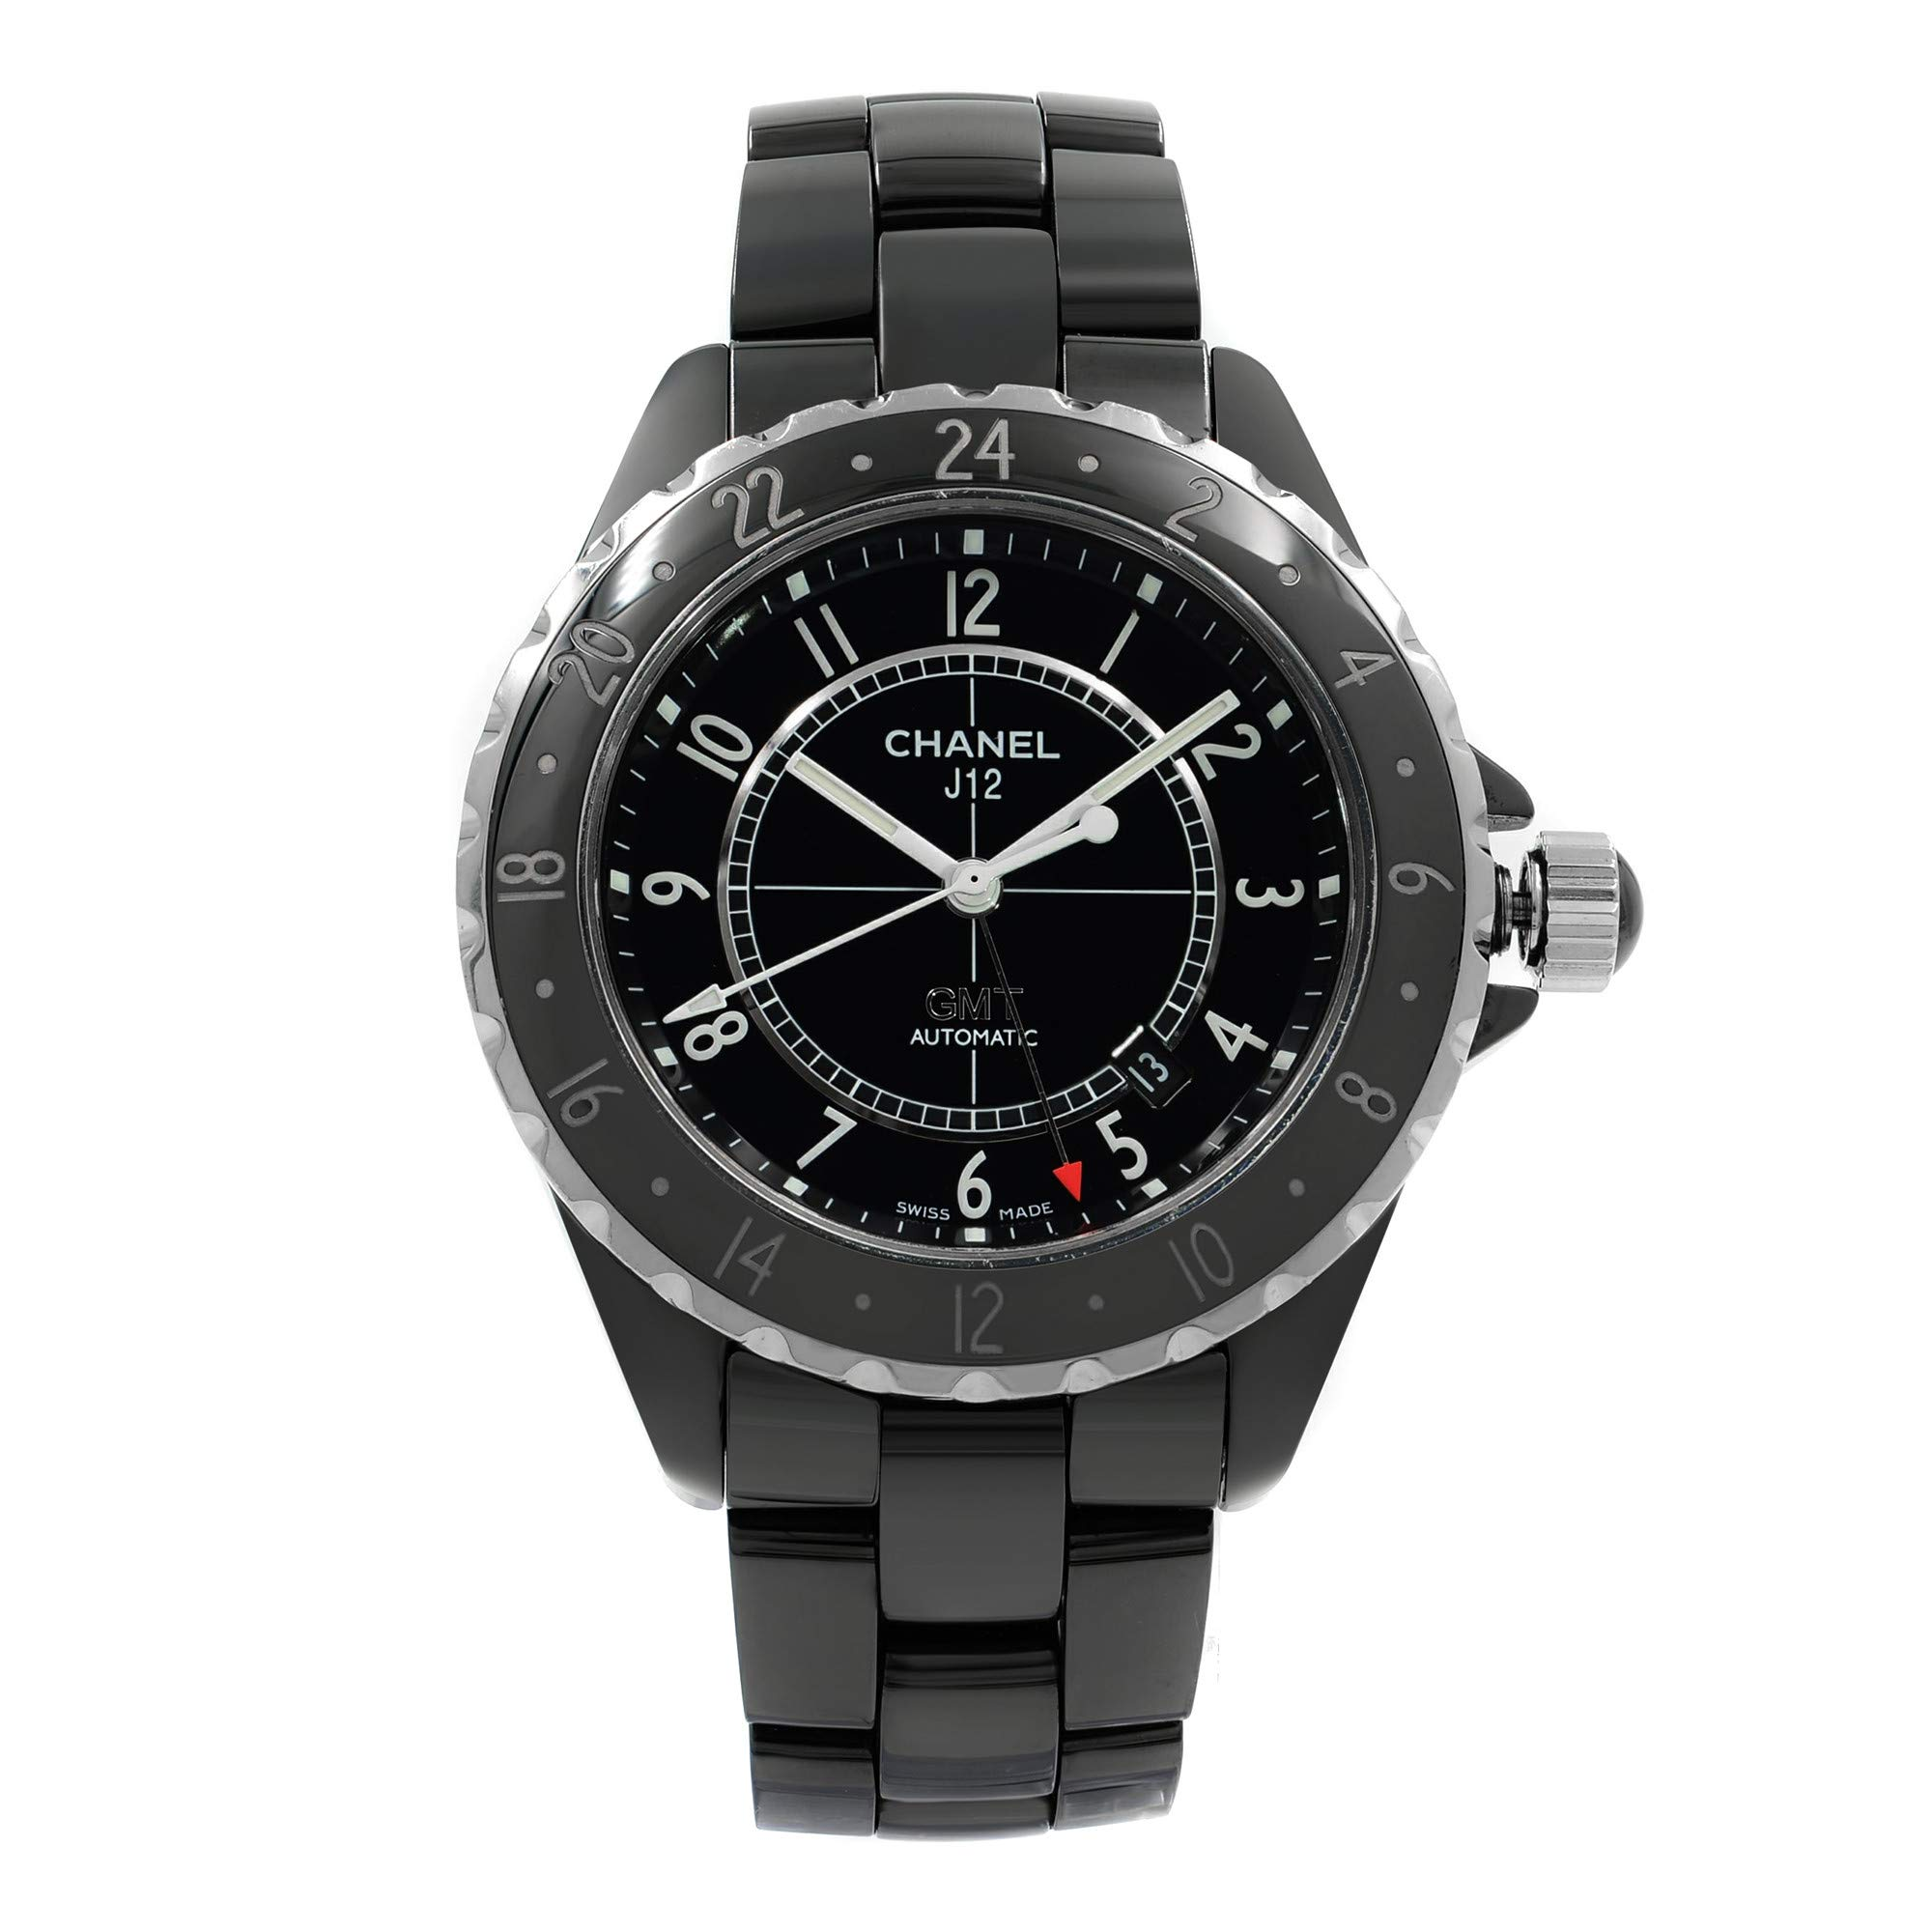 Chanel J12 Automatic-self-Wind Male Watch H2012 (Certified Pre-Owned)